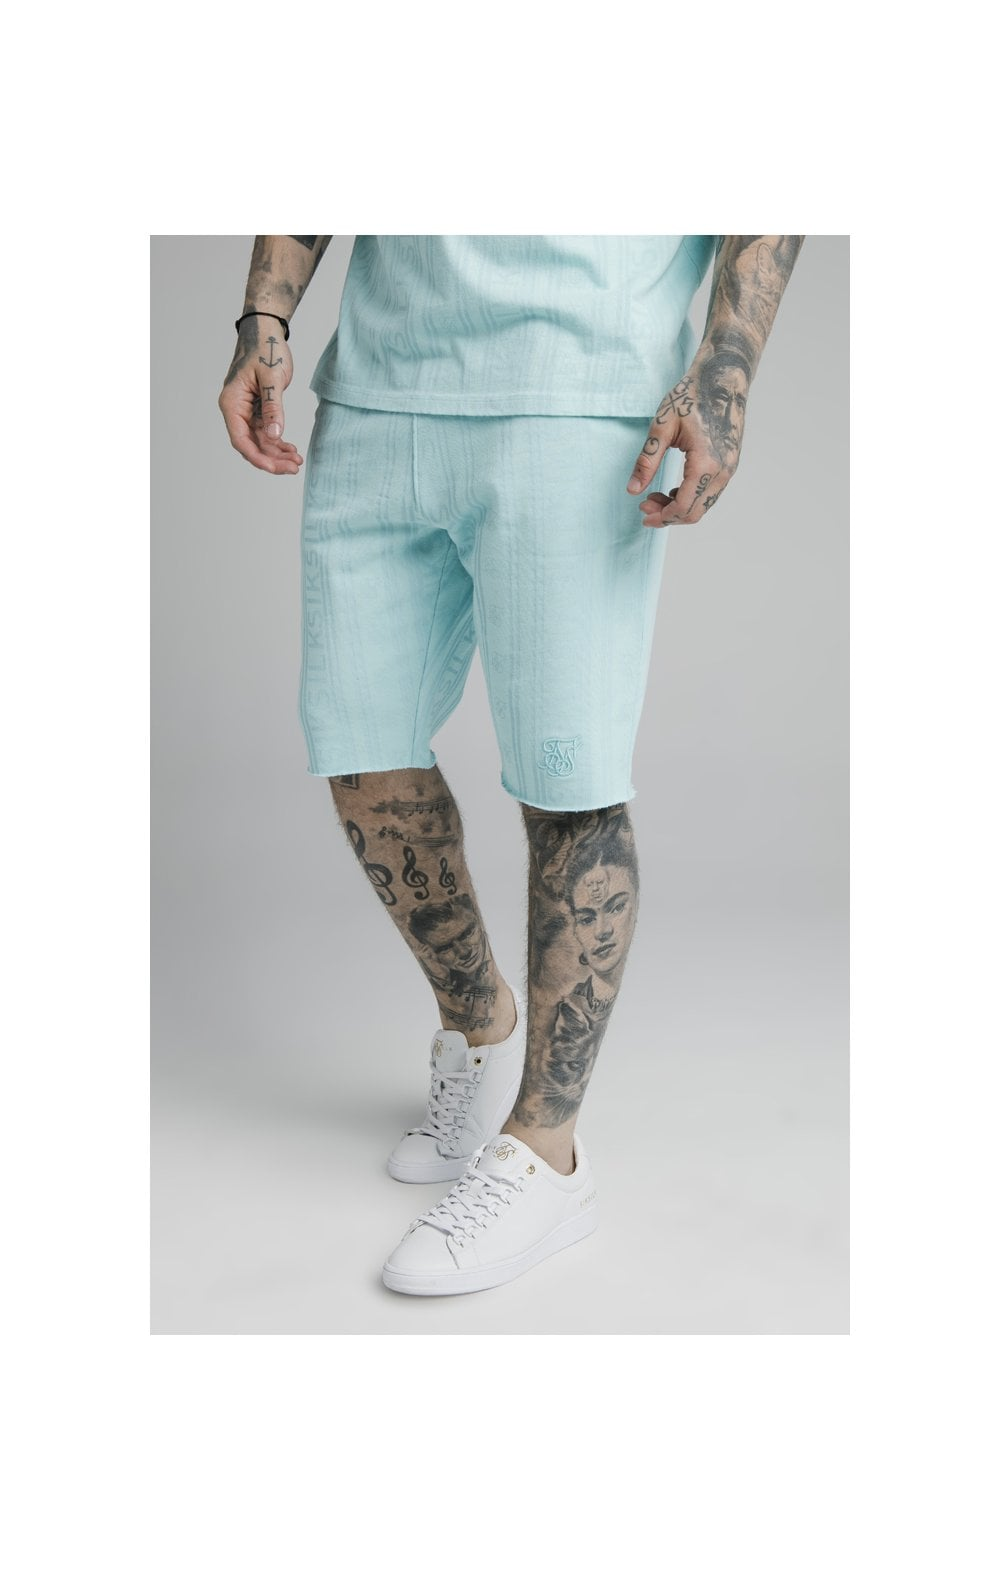 Load image into Gallery viewer, SikSilk Pastel Gym Shorts - Blue